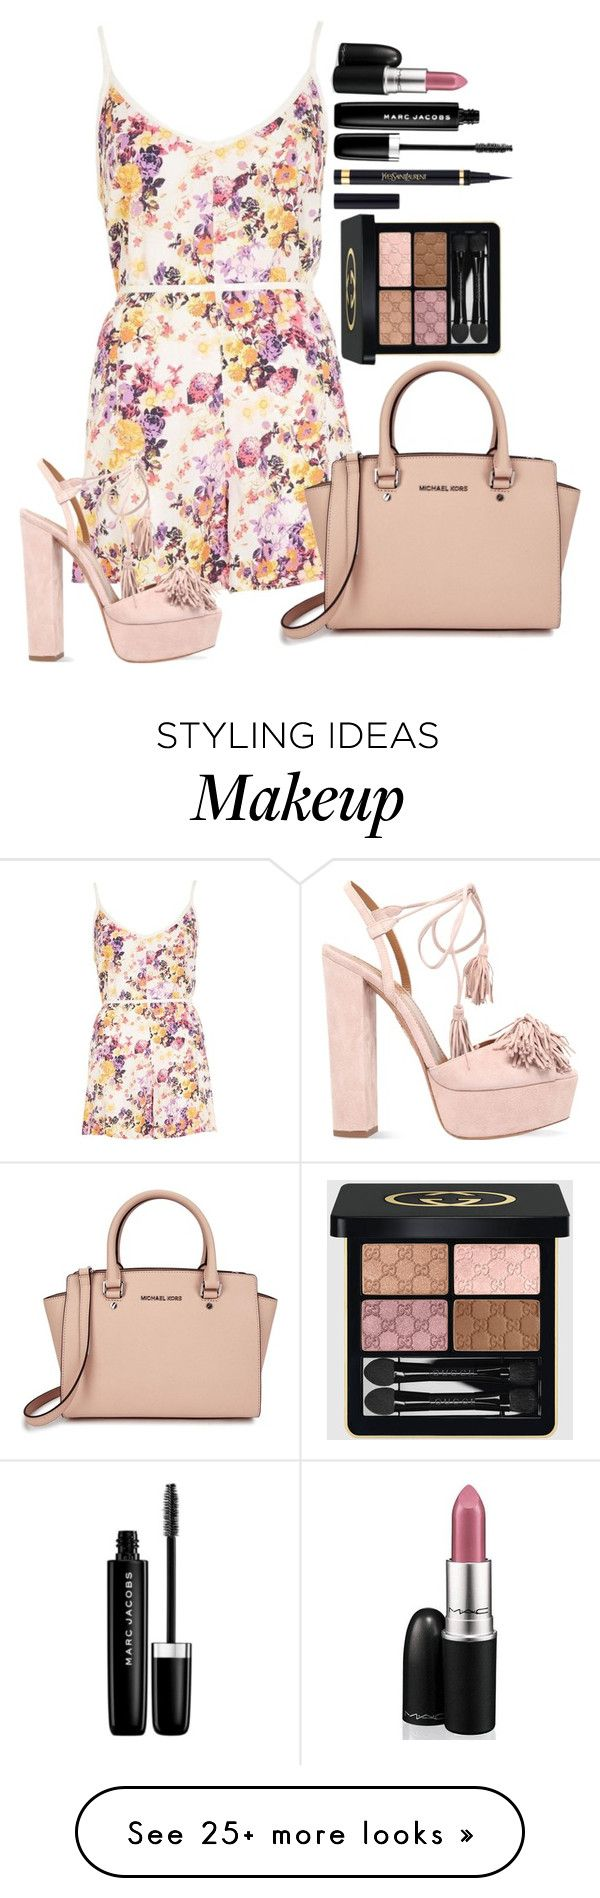 """Untitled #1459"" by fabianarveloc on Polyvore featuring River Island, Aquazzura, Michael Kors, Yves Saint Laurent, Marc Jacobs, Gucci and MAC Cosmetics"